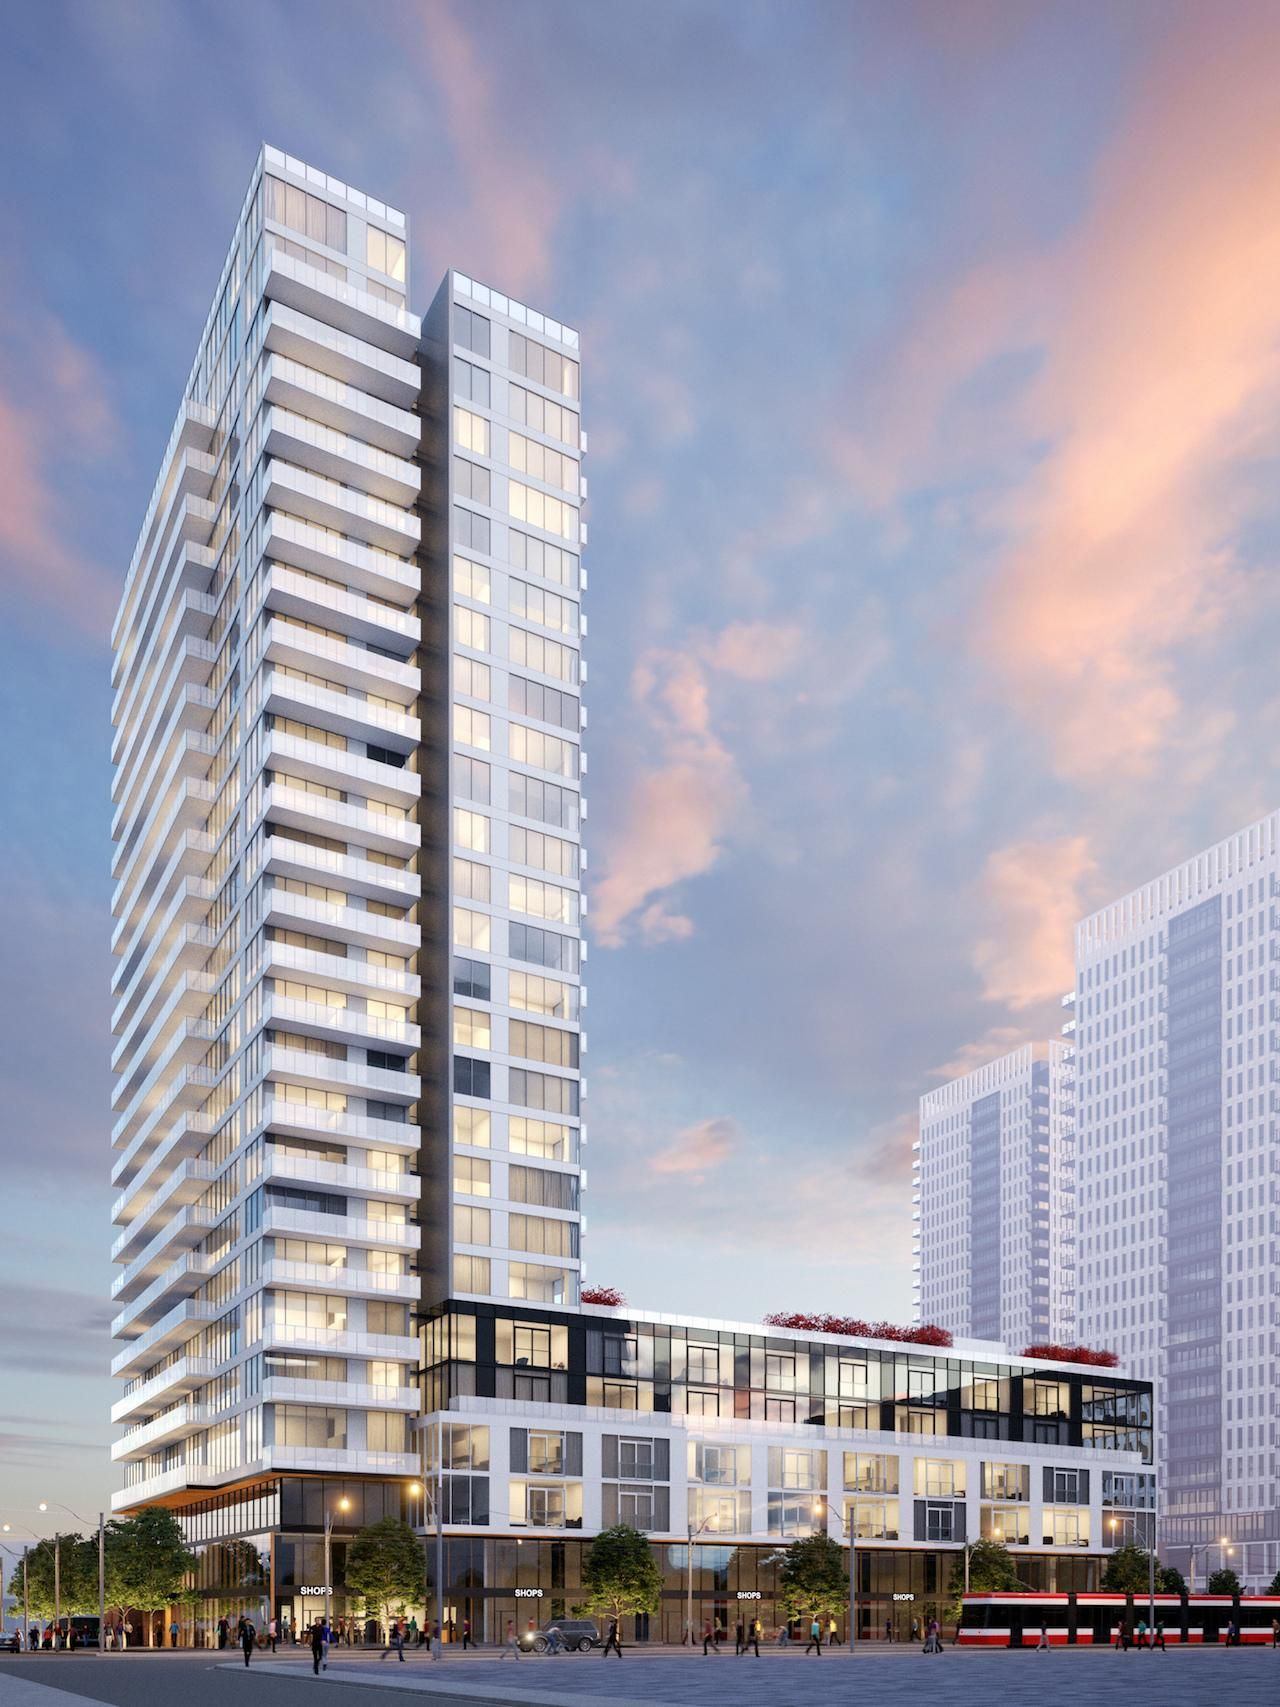 20 Tubman Ave. This condo at The Wyatt Condos is located in  Downtown, Toronto